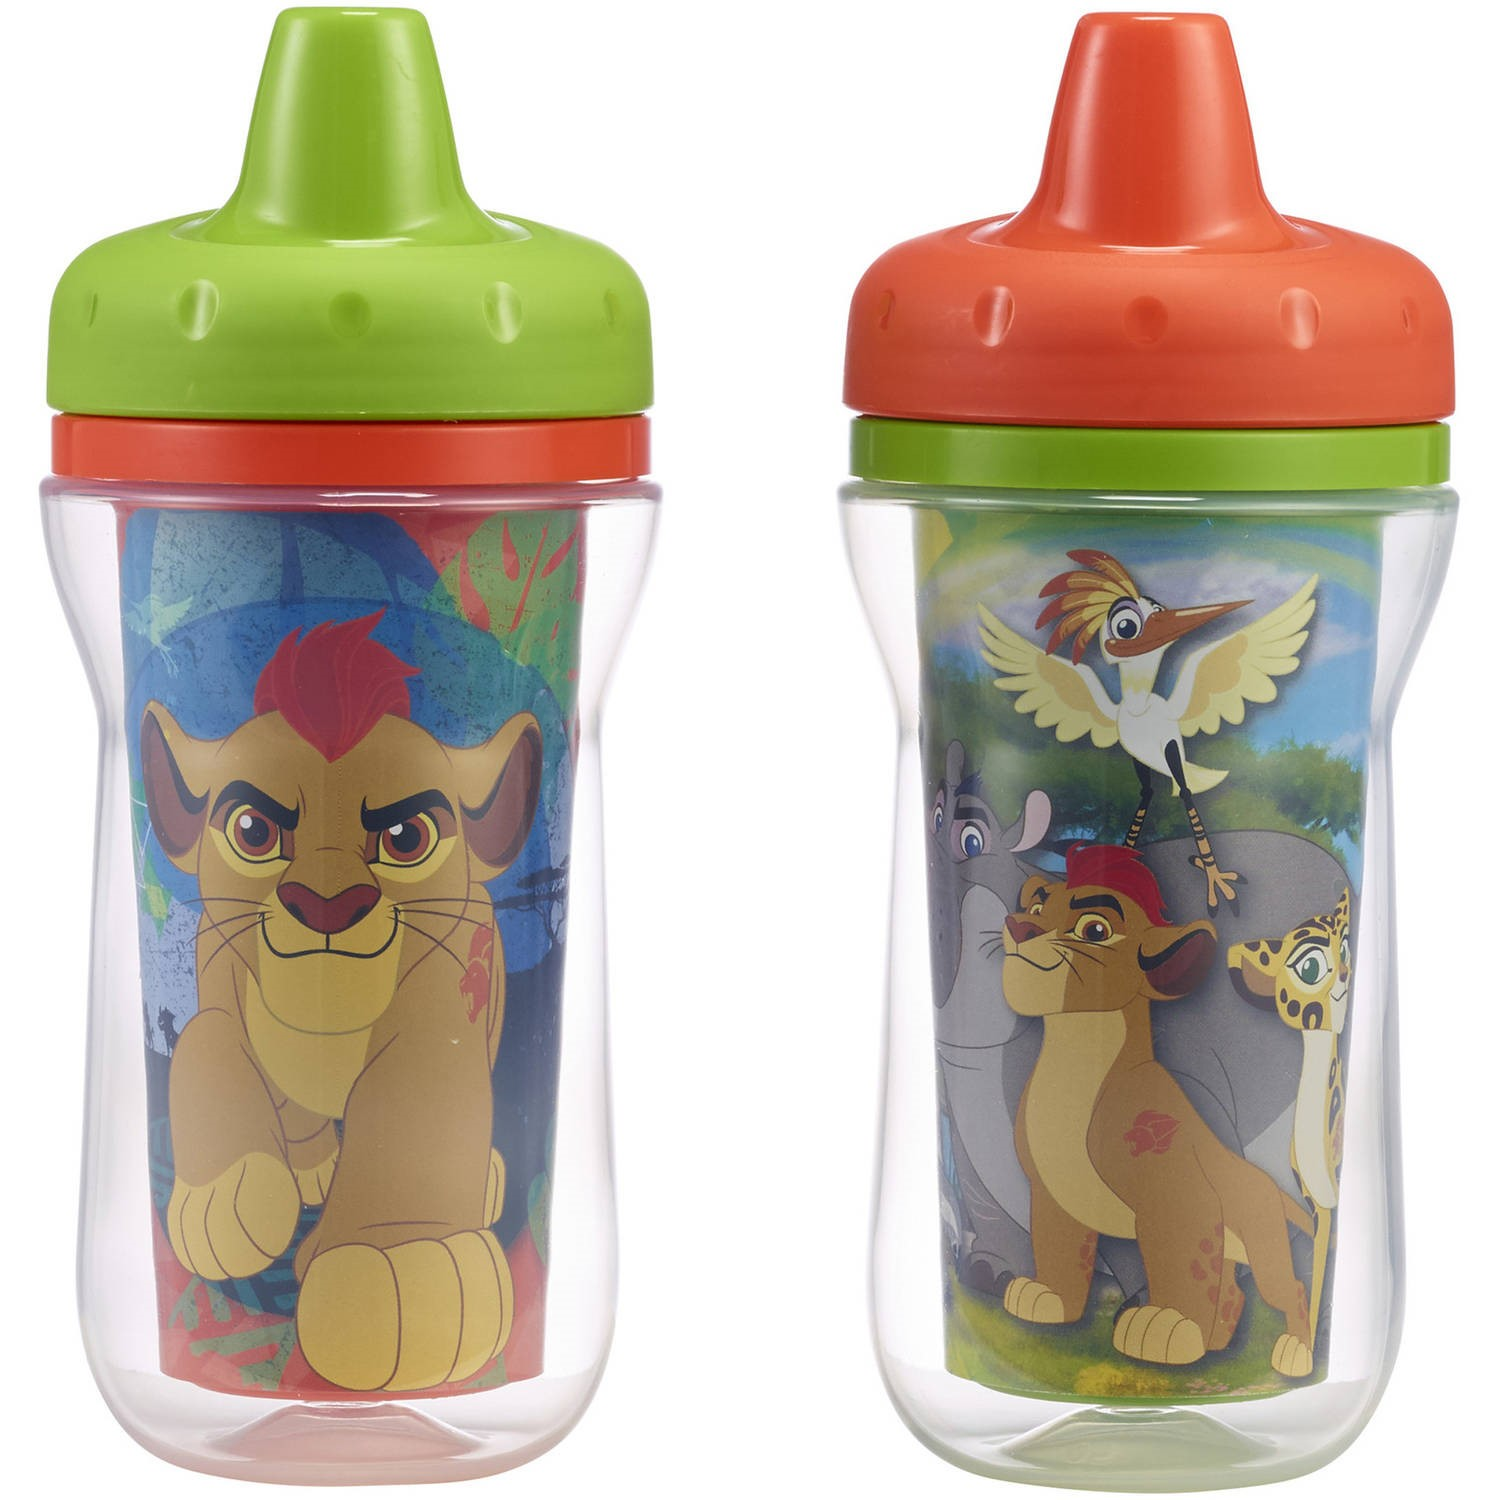 The First Years Disney Insulated Hard Spout Sippy Cup - The Lion Guard, 2 pack